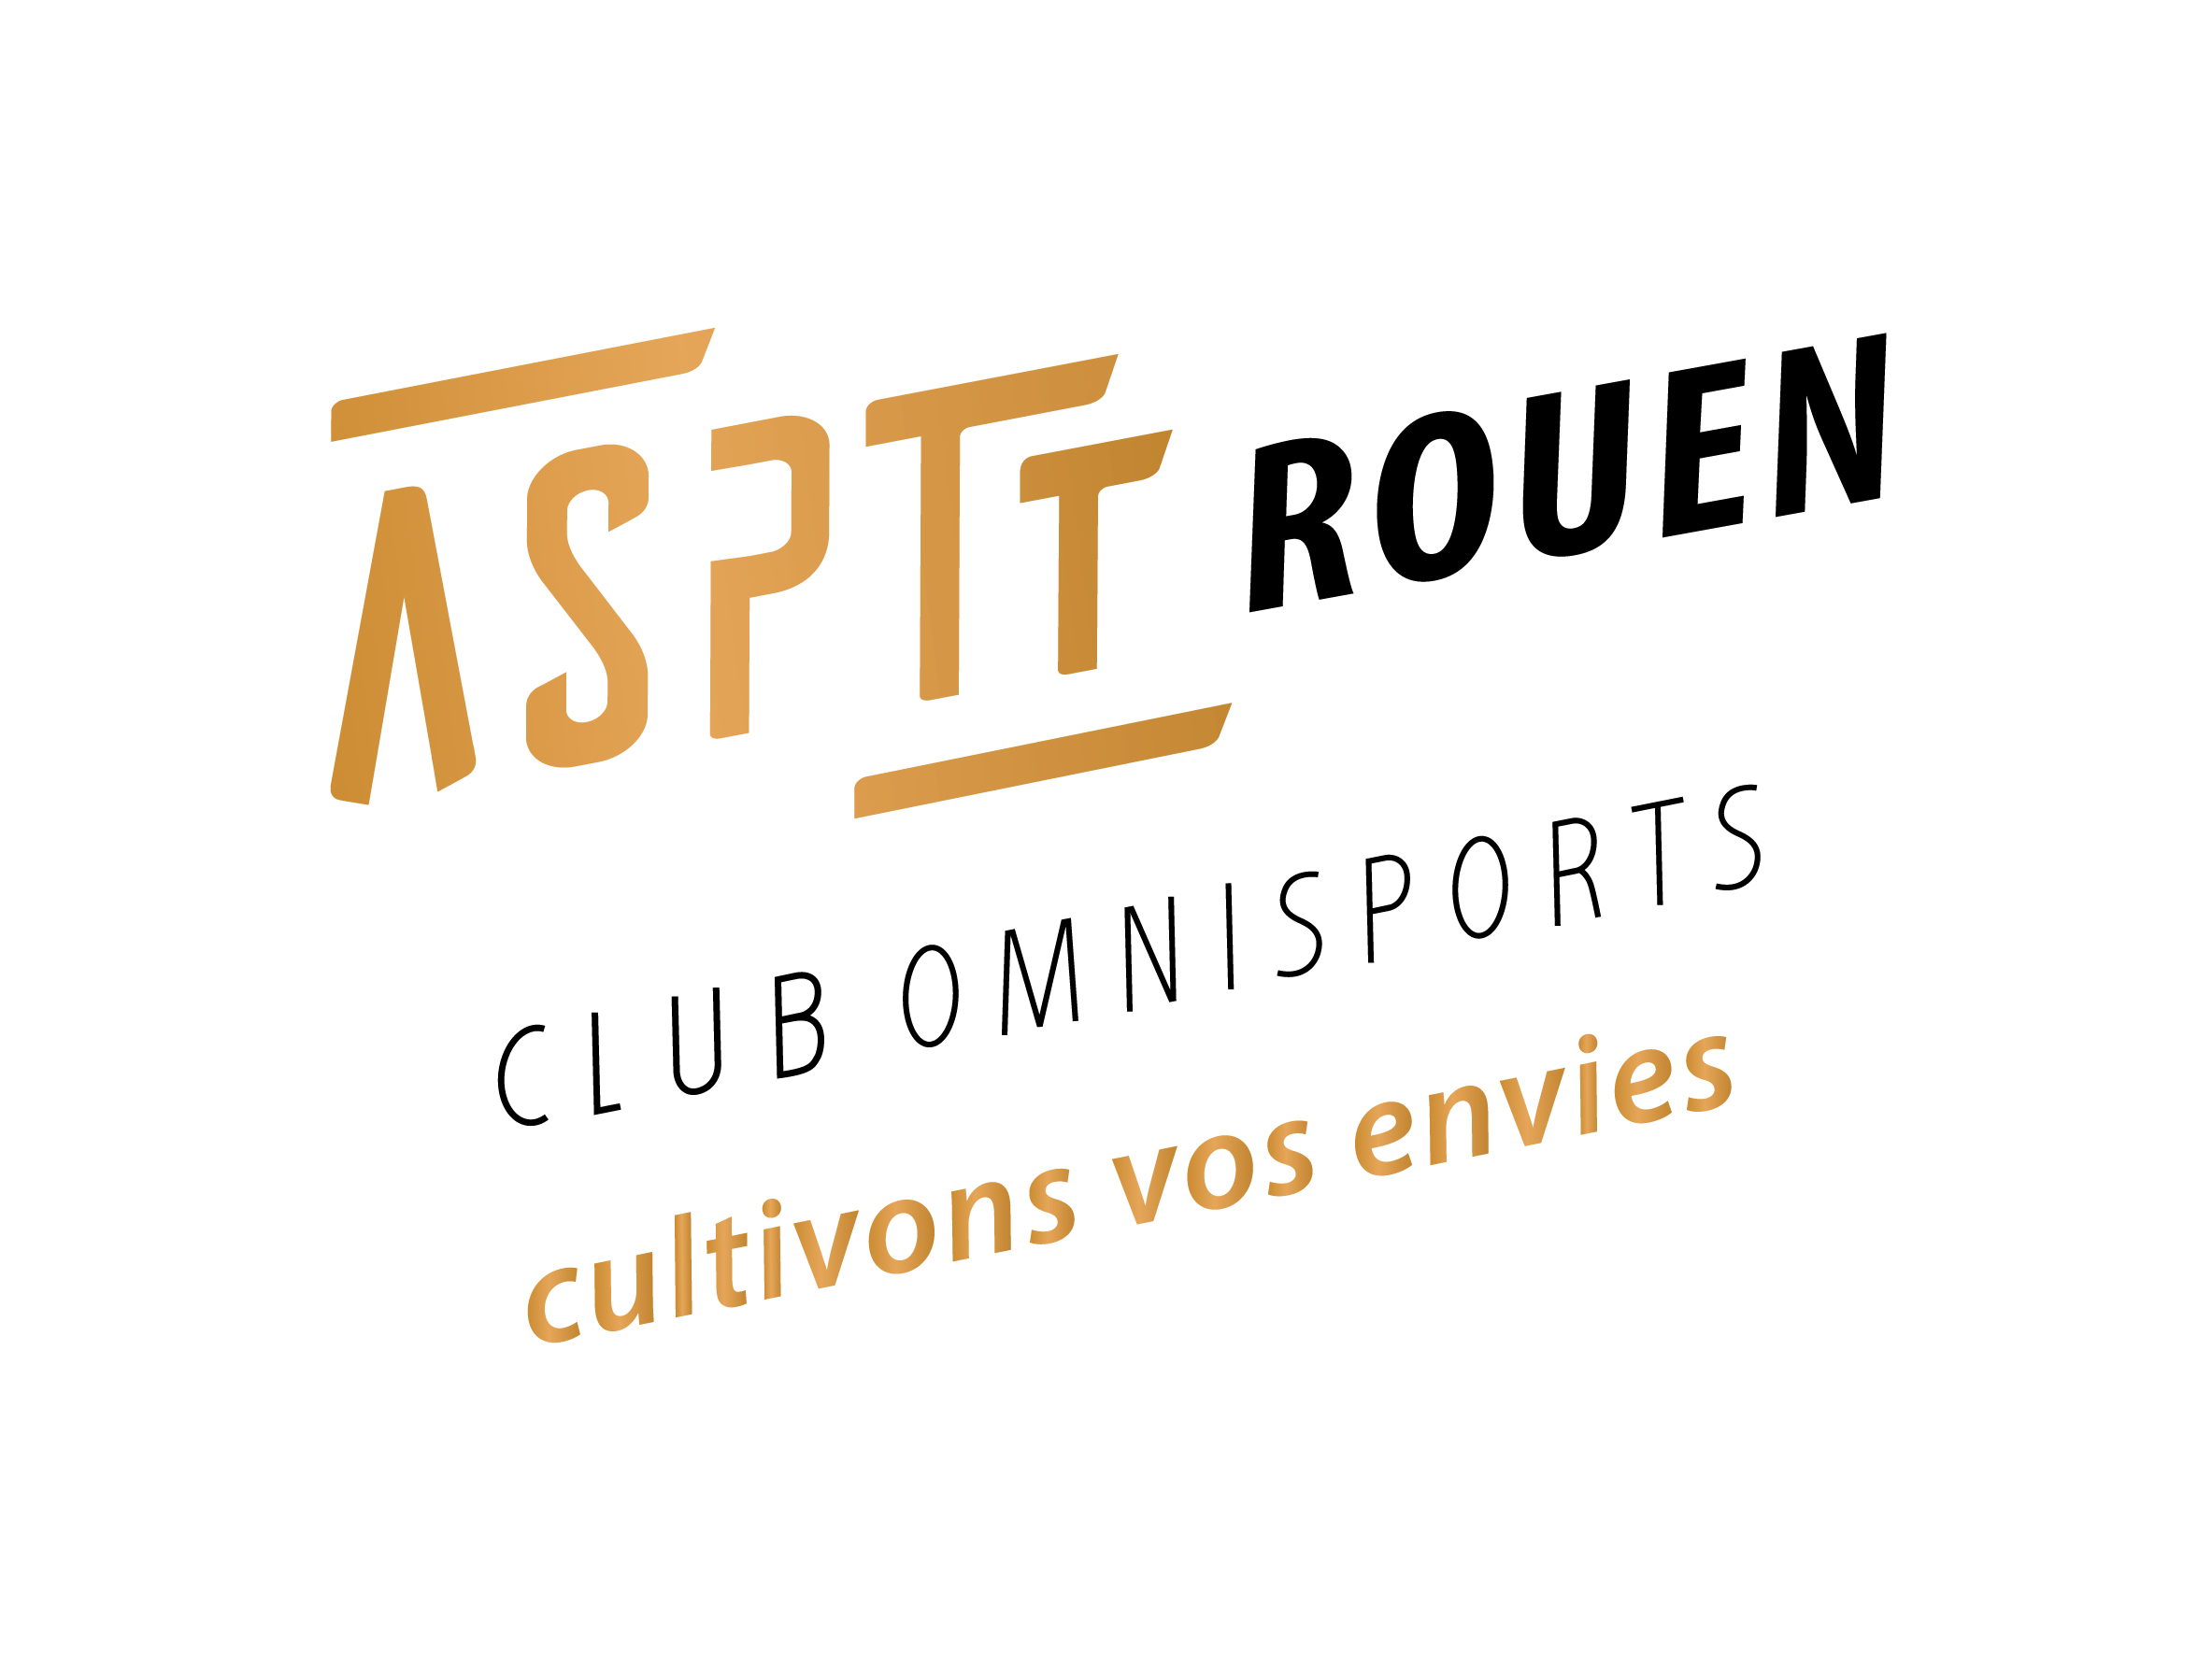 Club Omnisports - Cultivons vos envies